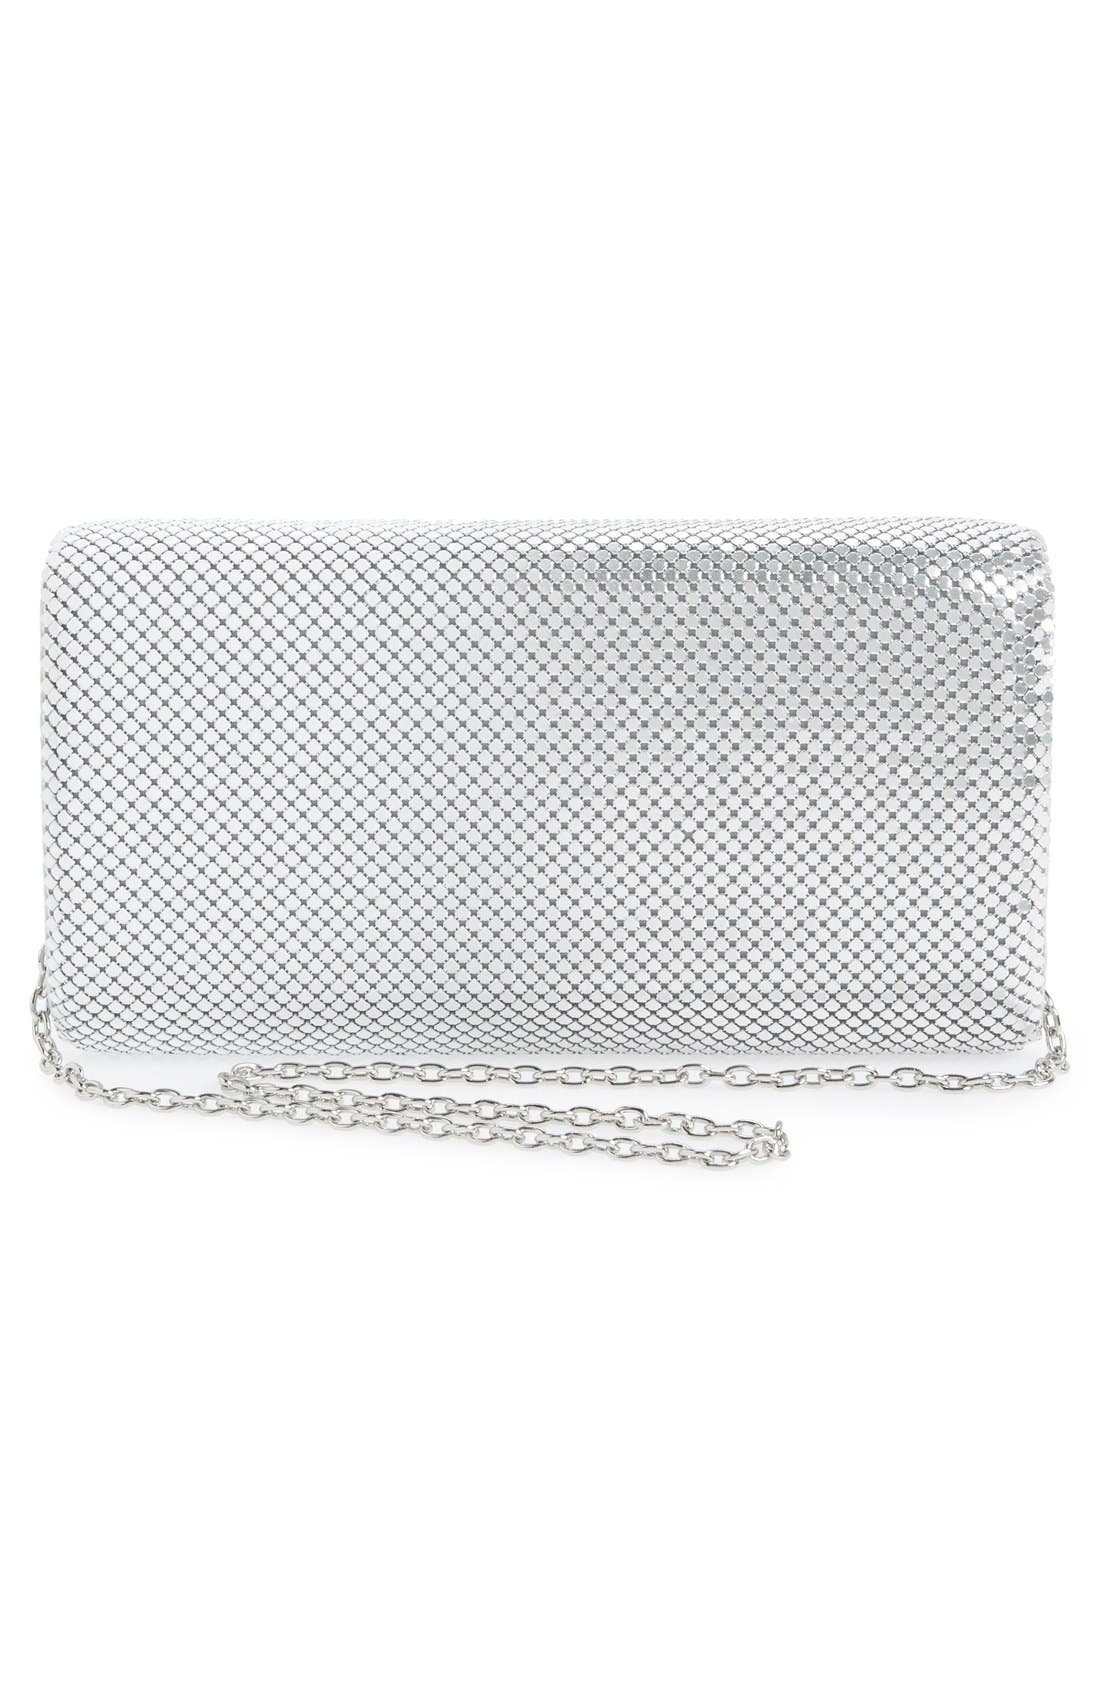 Alternate Image 3  - Jessica McClintock Ombré Mesh Clutch